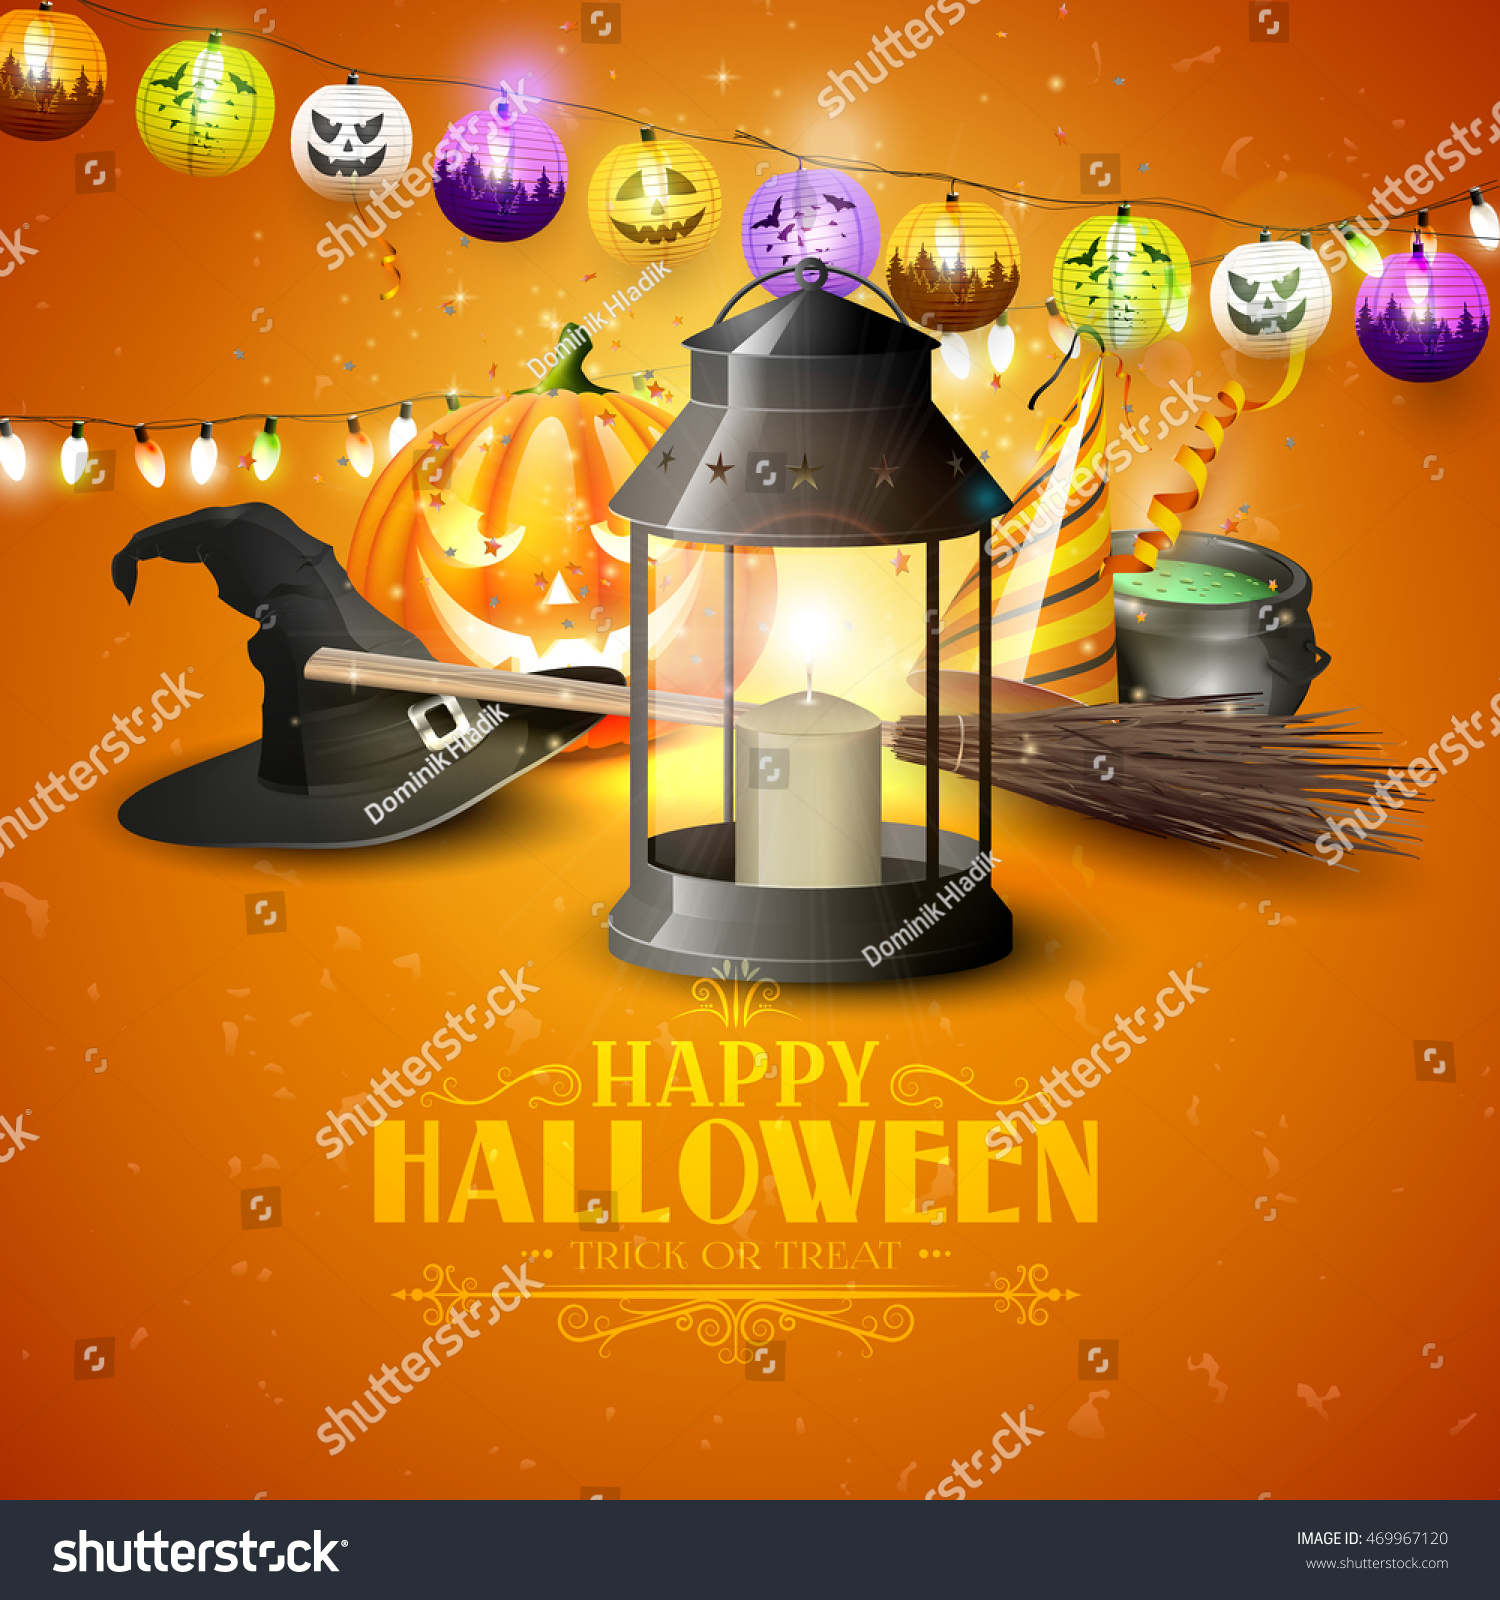 happy halloween greeting card black lantern stock vector (royalty